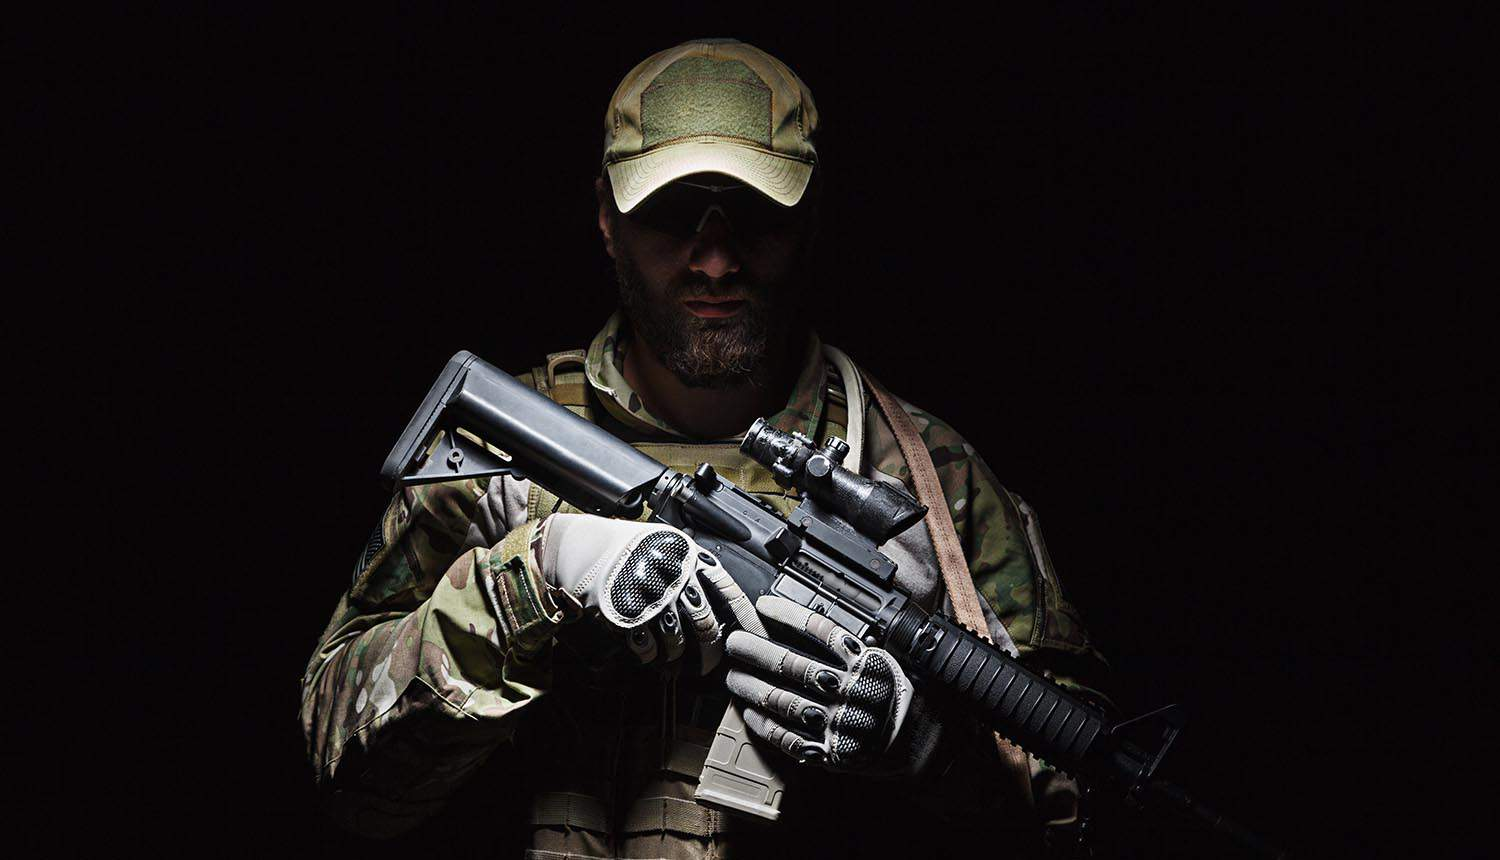 Soldier holding rifle showing national security and attack on critical infrastructure can lead to shooting war